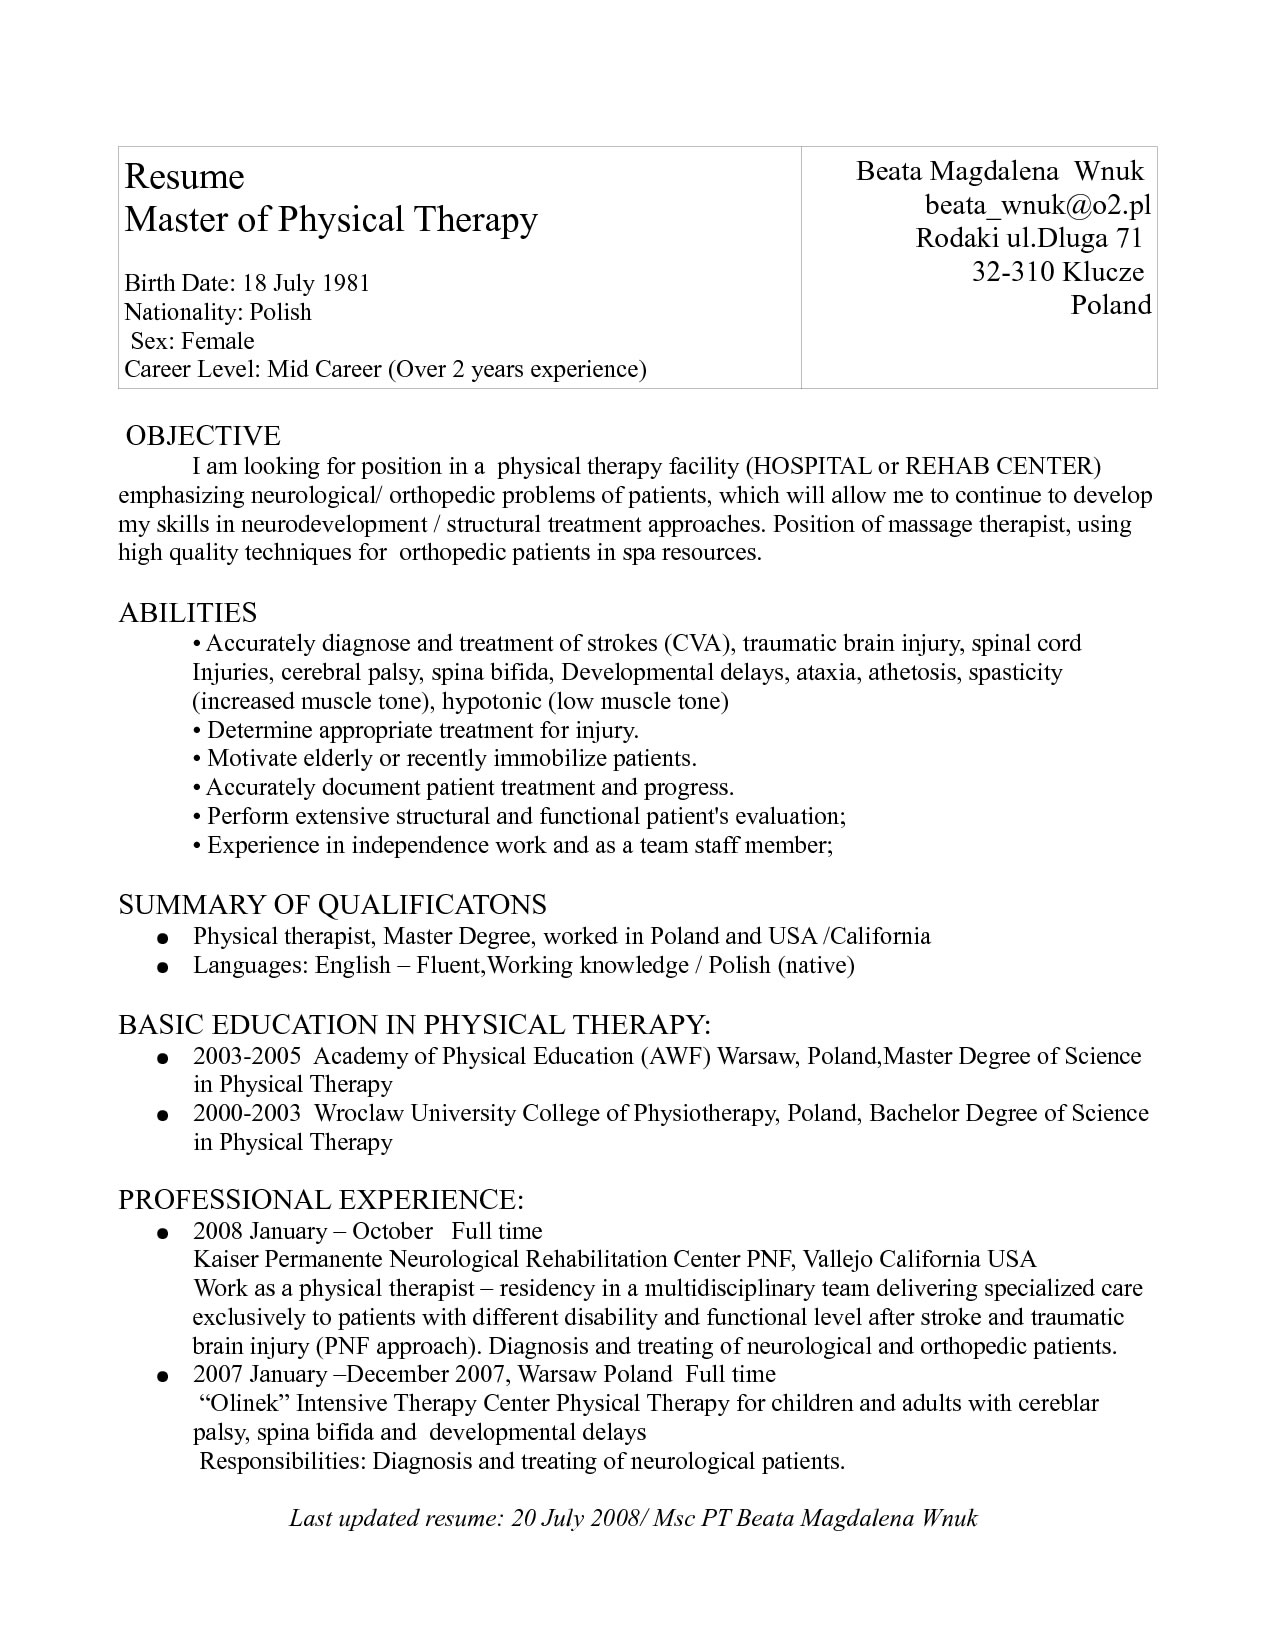 essay about physical therapy essay about physical therapy ...